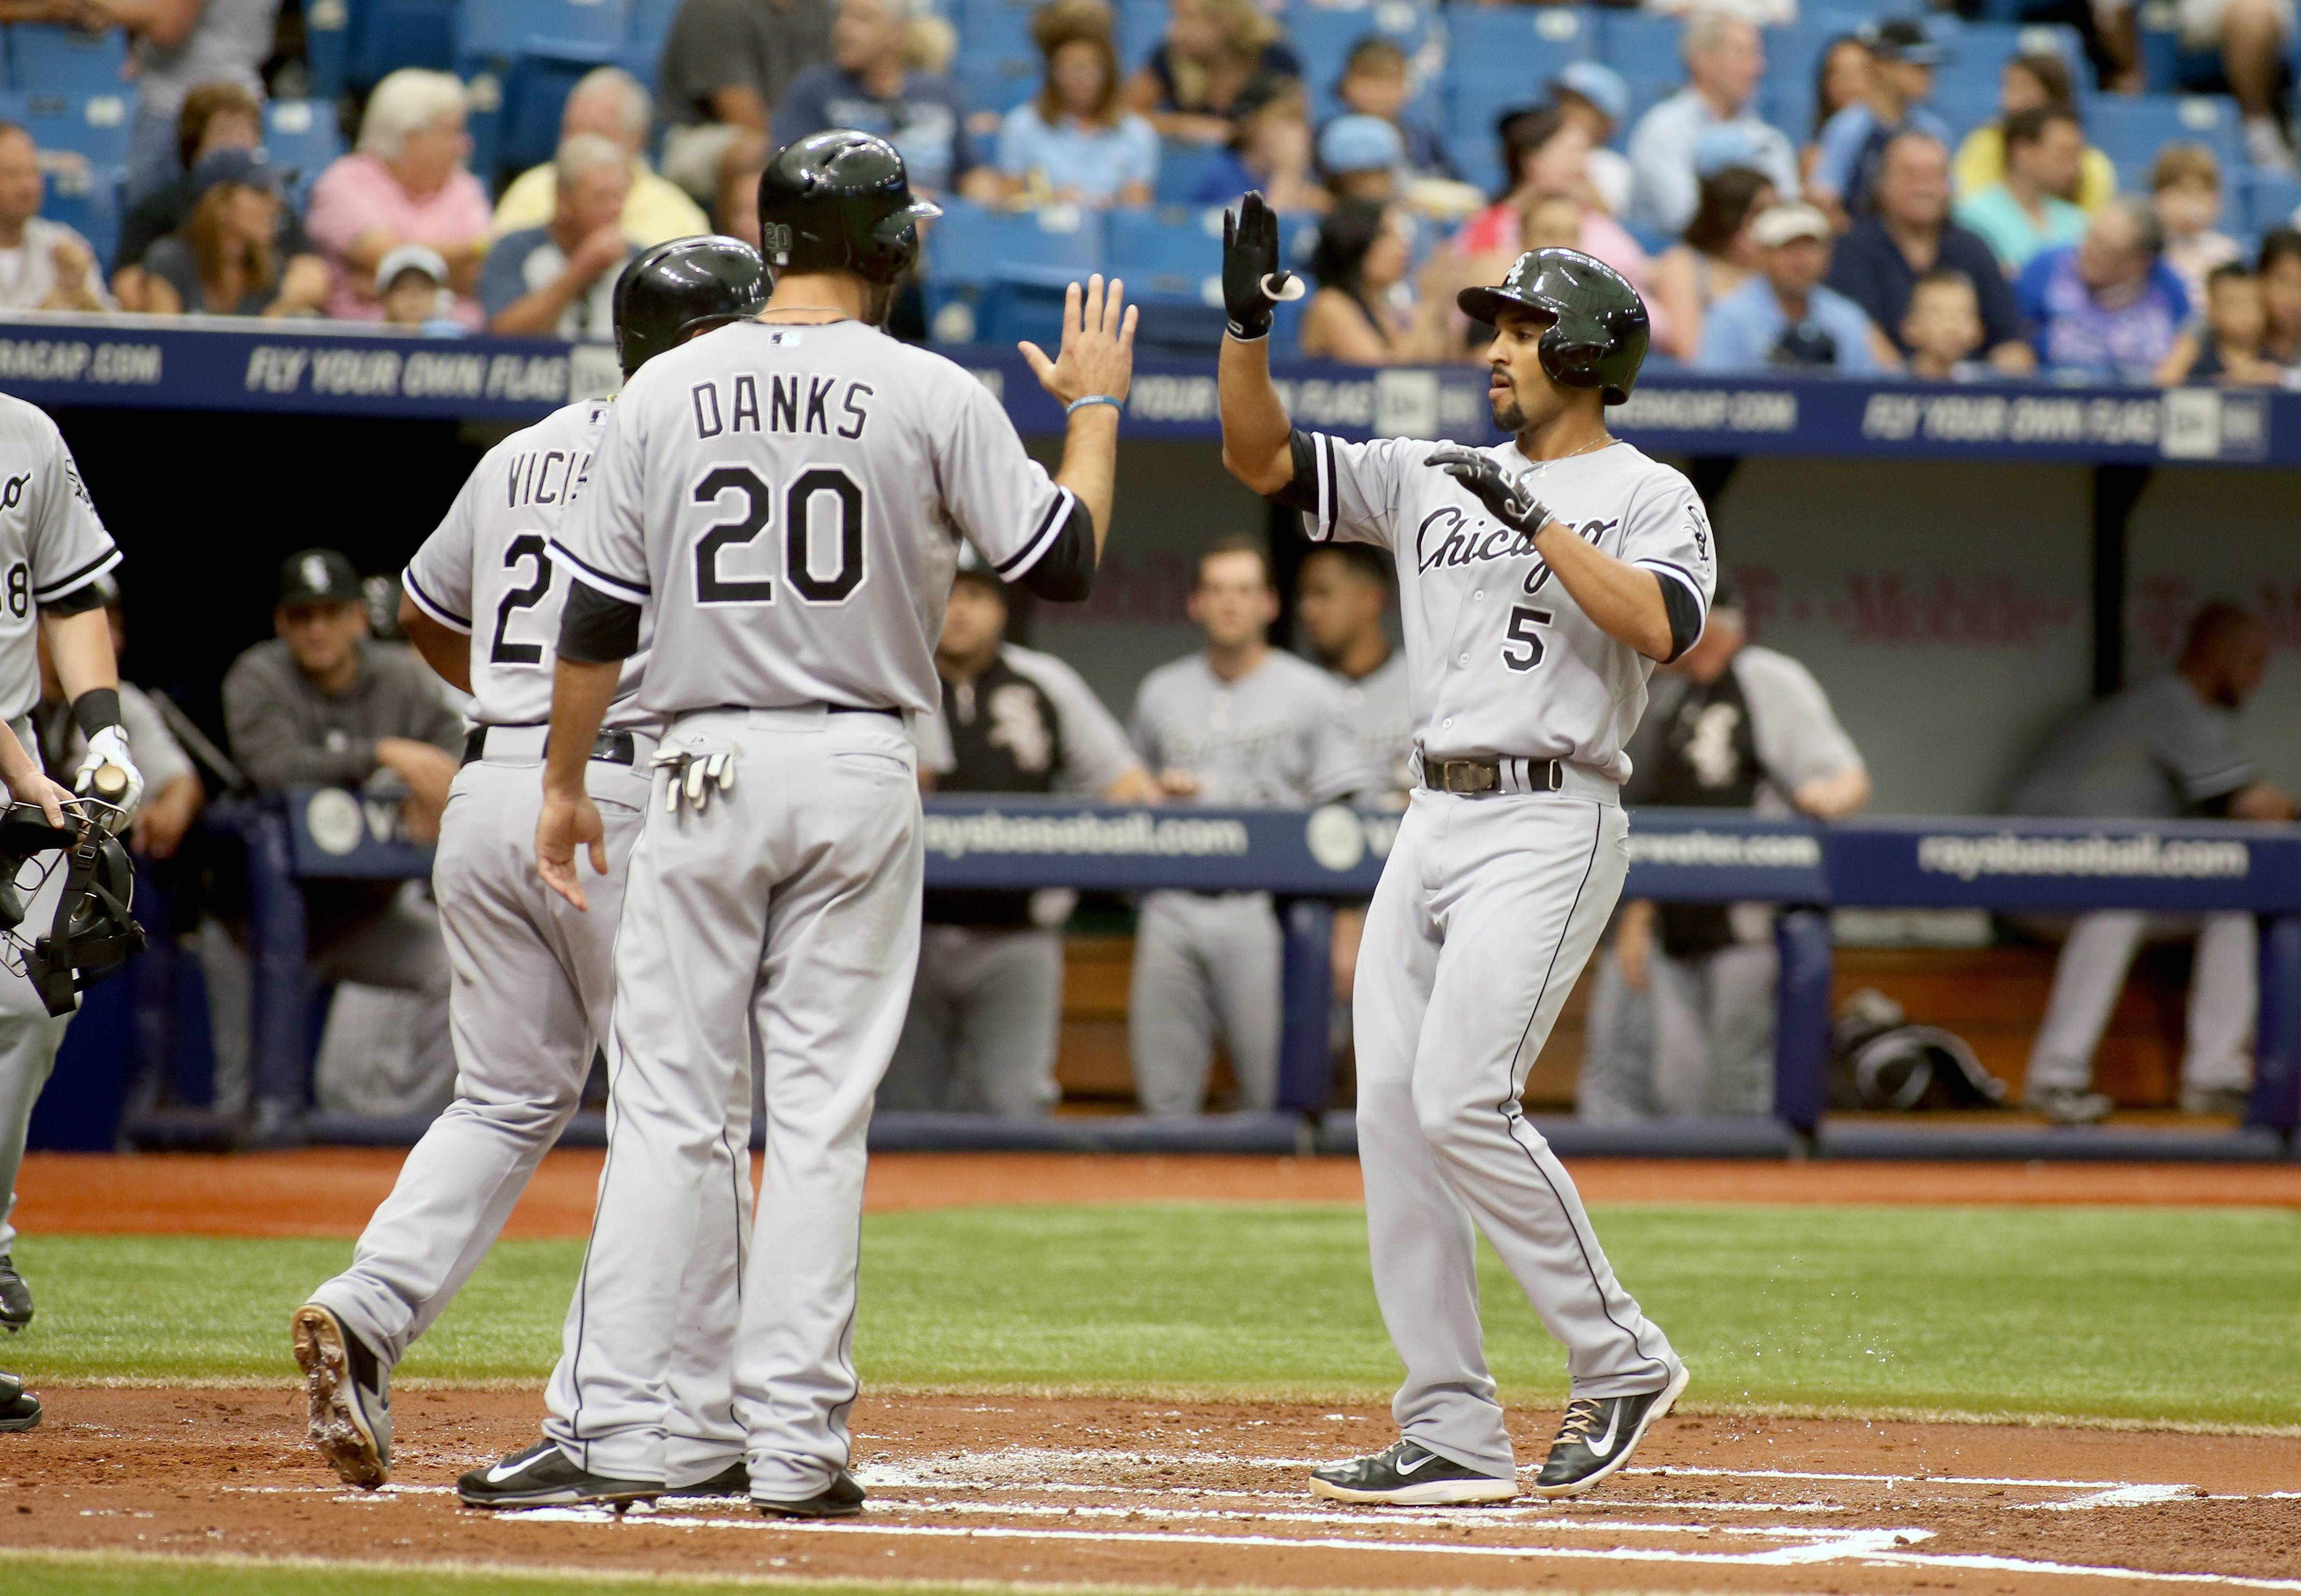 Chicago White Sox third baseman Marcus Semien (5) gets congratulated on his three run home run by teammates Jordan Danks (20) and Dayan Viciedo (24) during the second inning of a baseball game against the Tampa Bay Rays on Sunday, Sept. 21, 2014 in St. Petersburg, Fla.